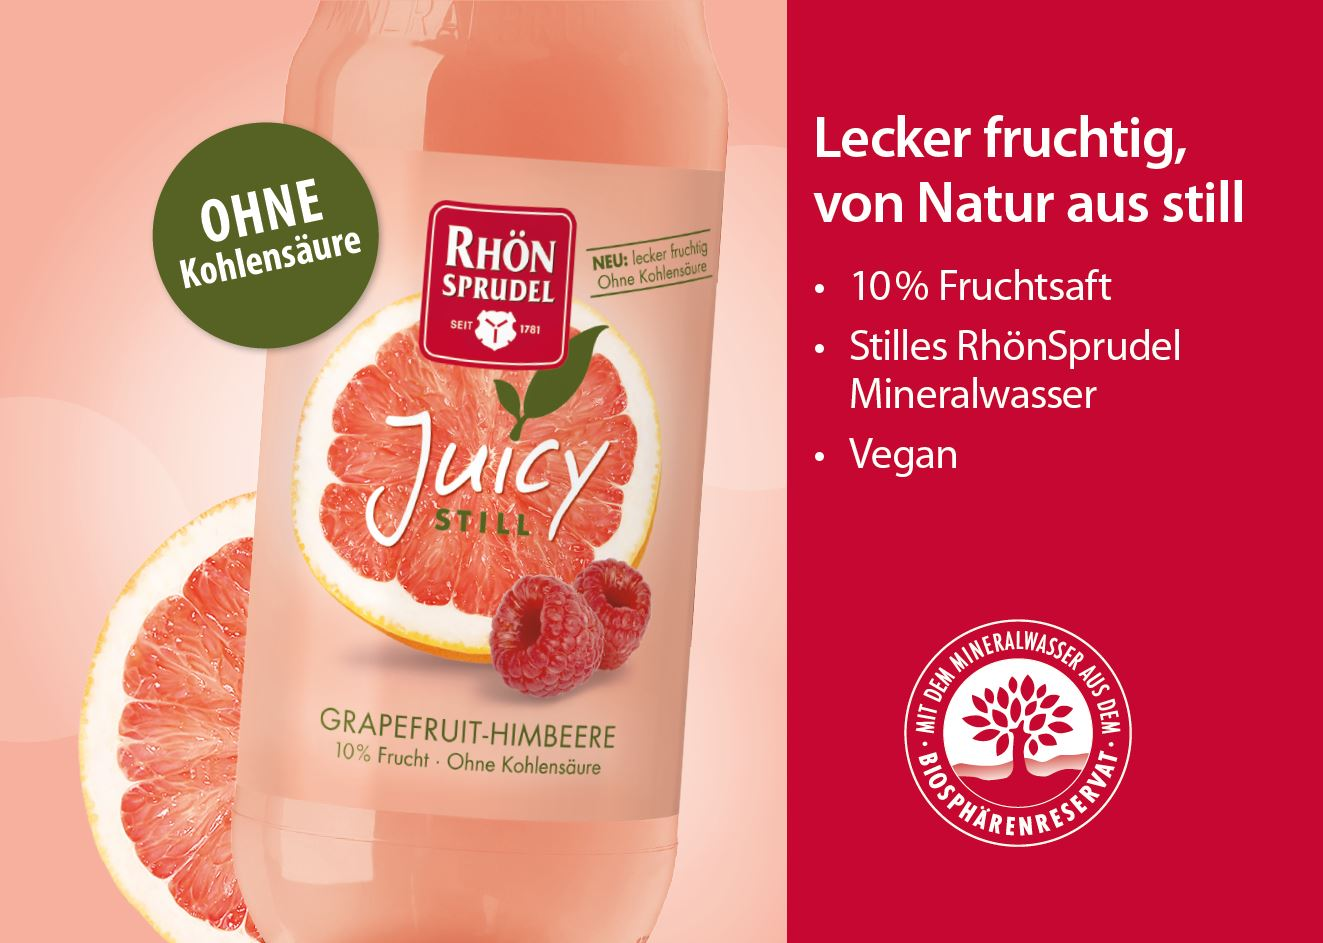 rhoensprudel_metoschild_juicy_grapefruit_himbeere_0_75l_pet_mw